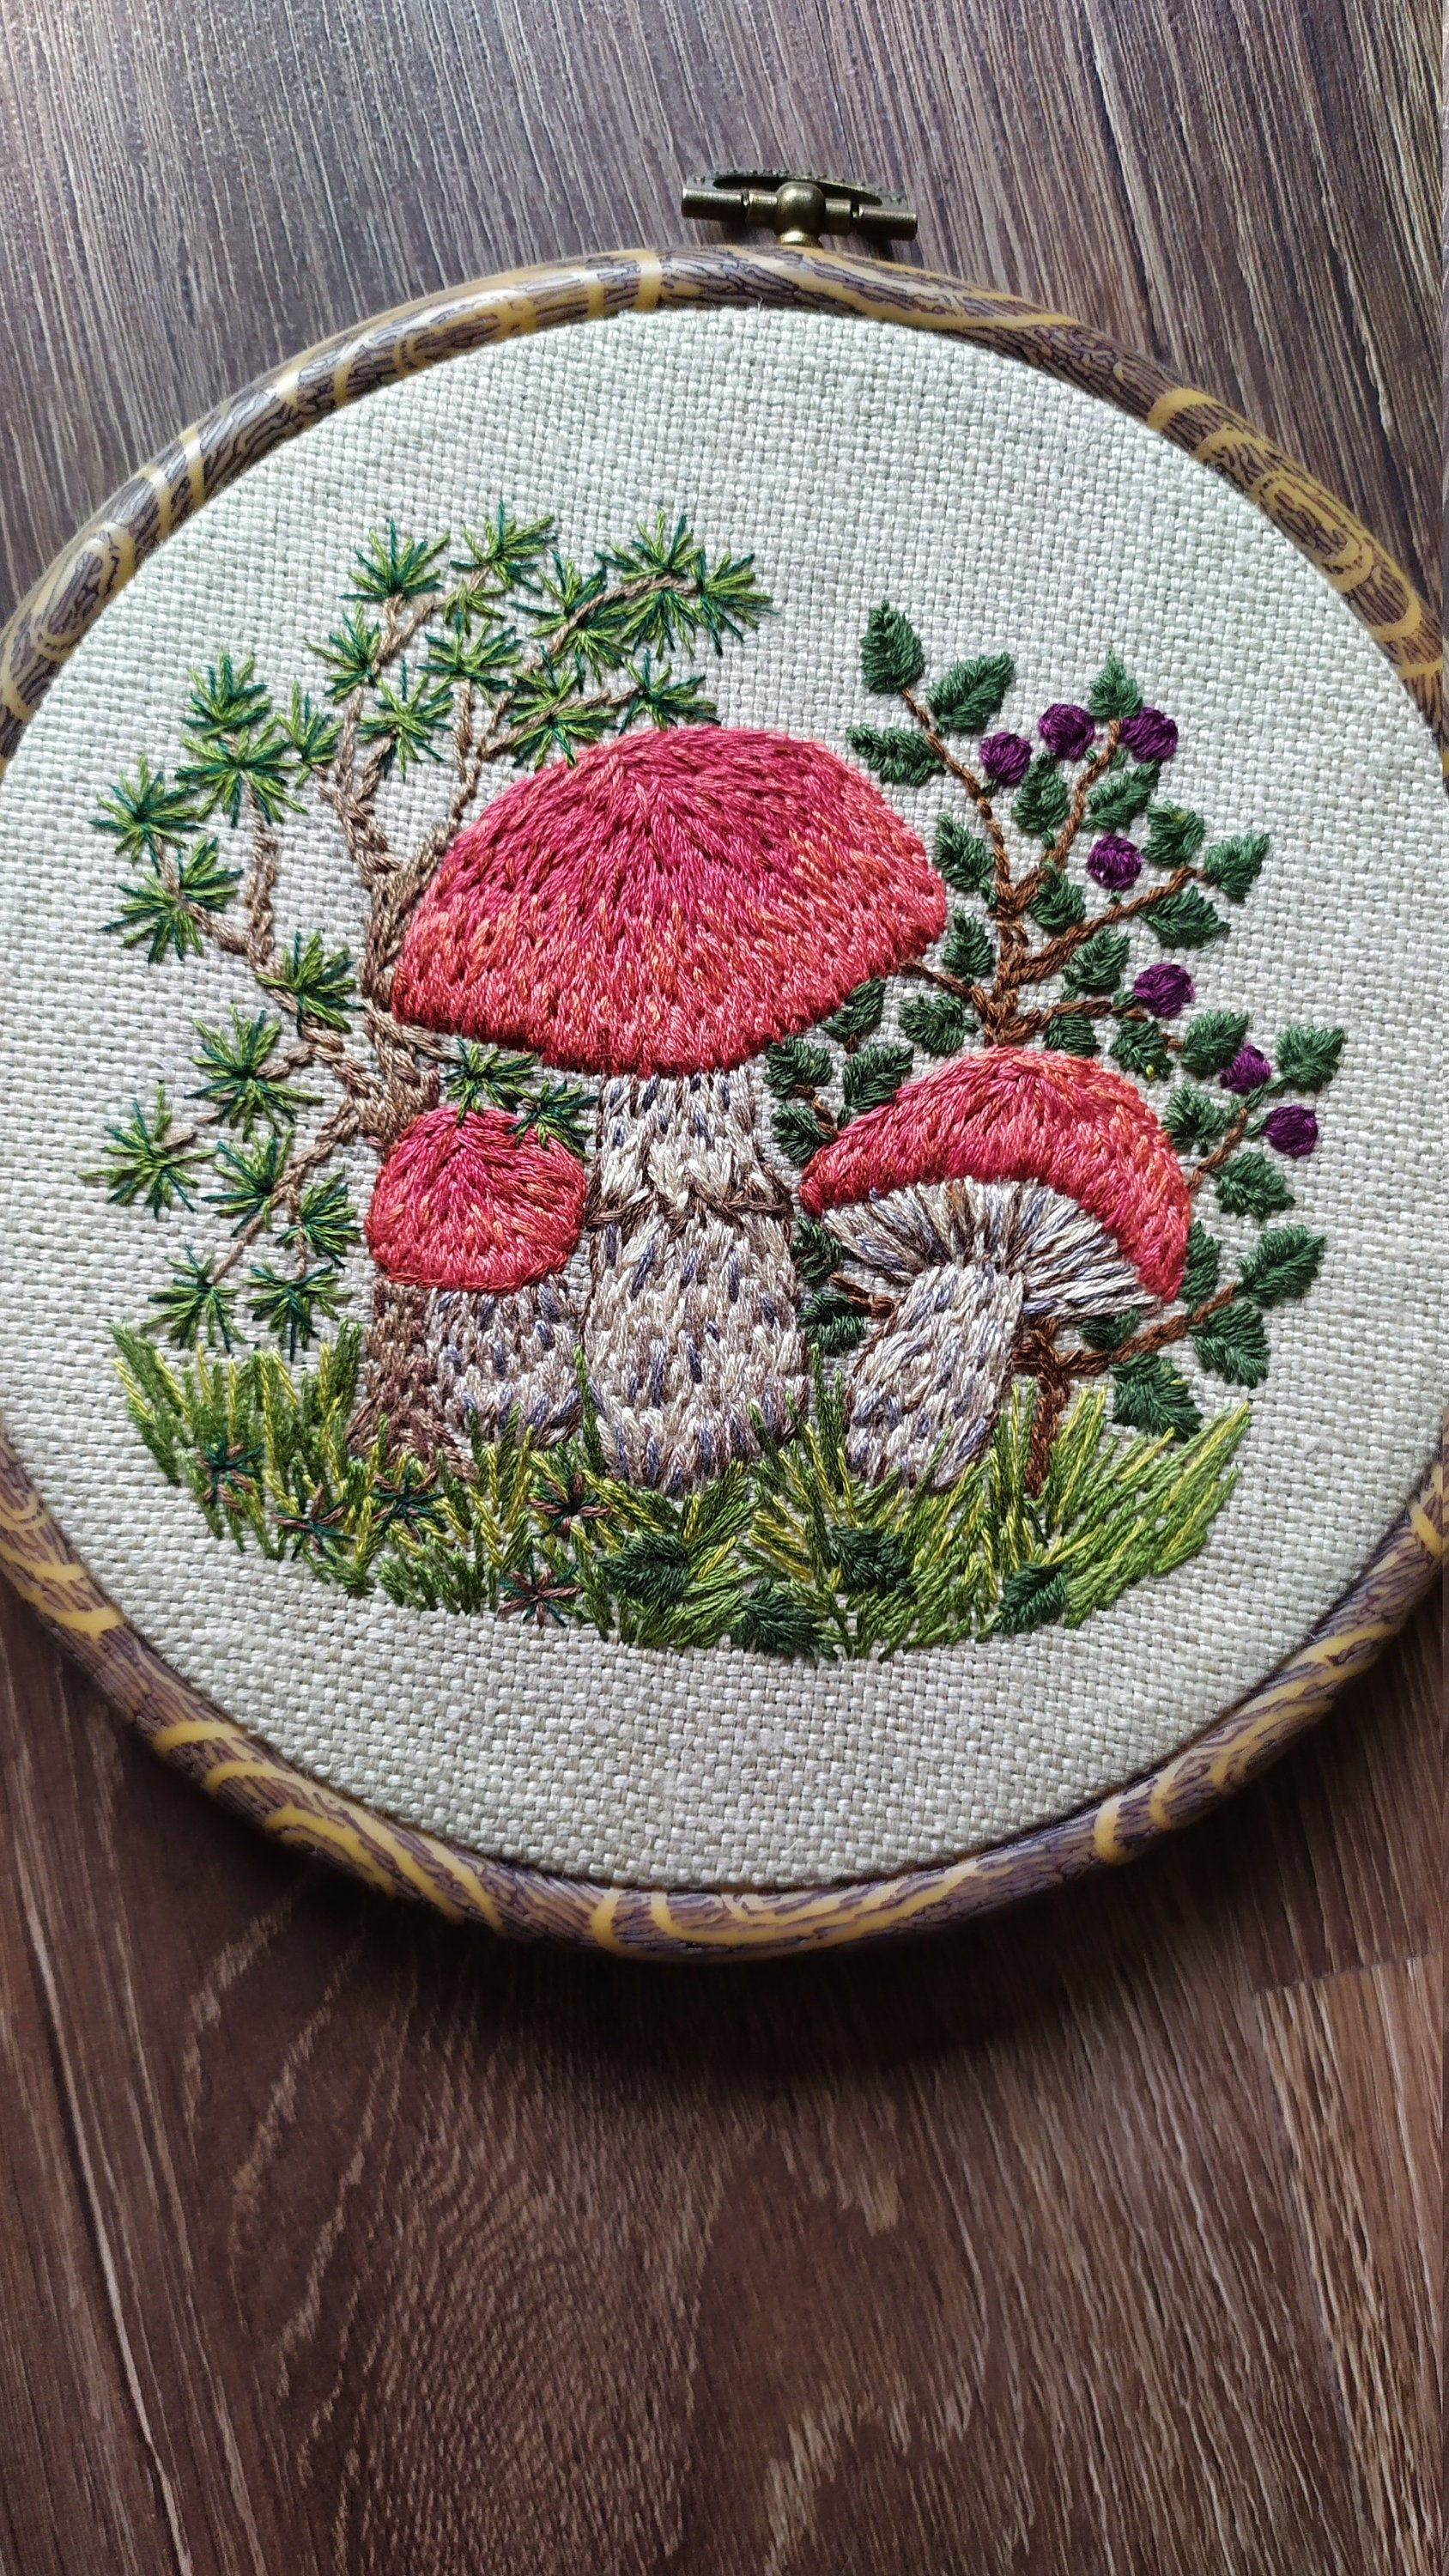 Embroidery Mushroom Mushroom Decor Mushroom Art Forest Decor In 2020 Embroidery Hoop Art Hand Embroidery Art Embroidery Art